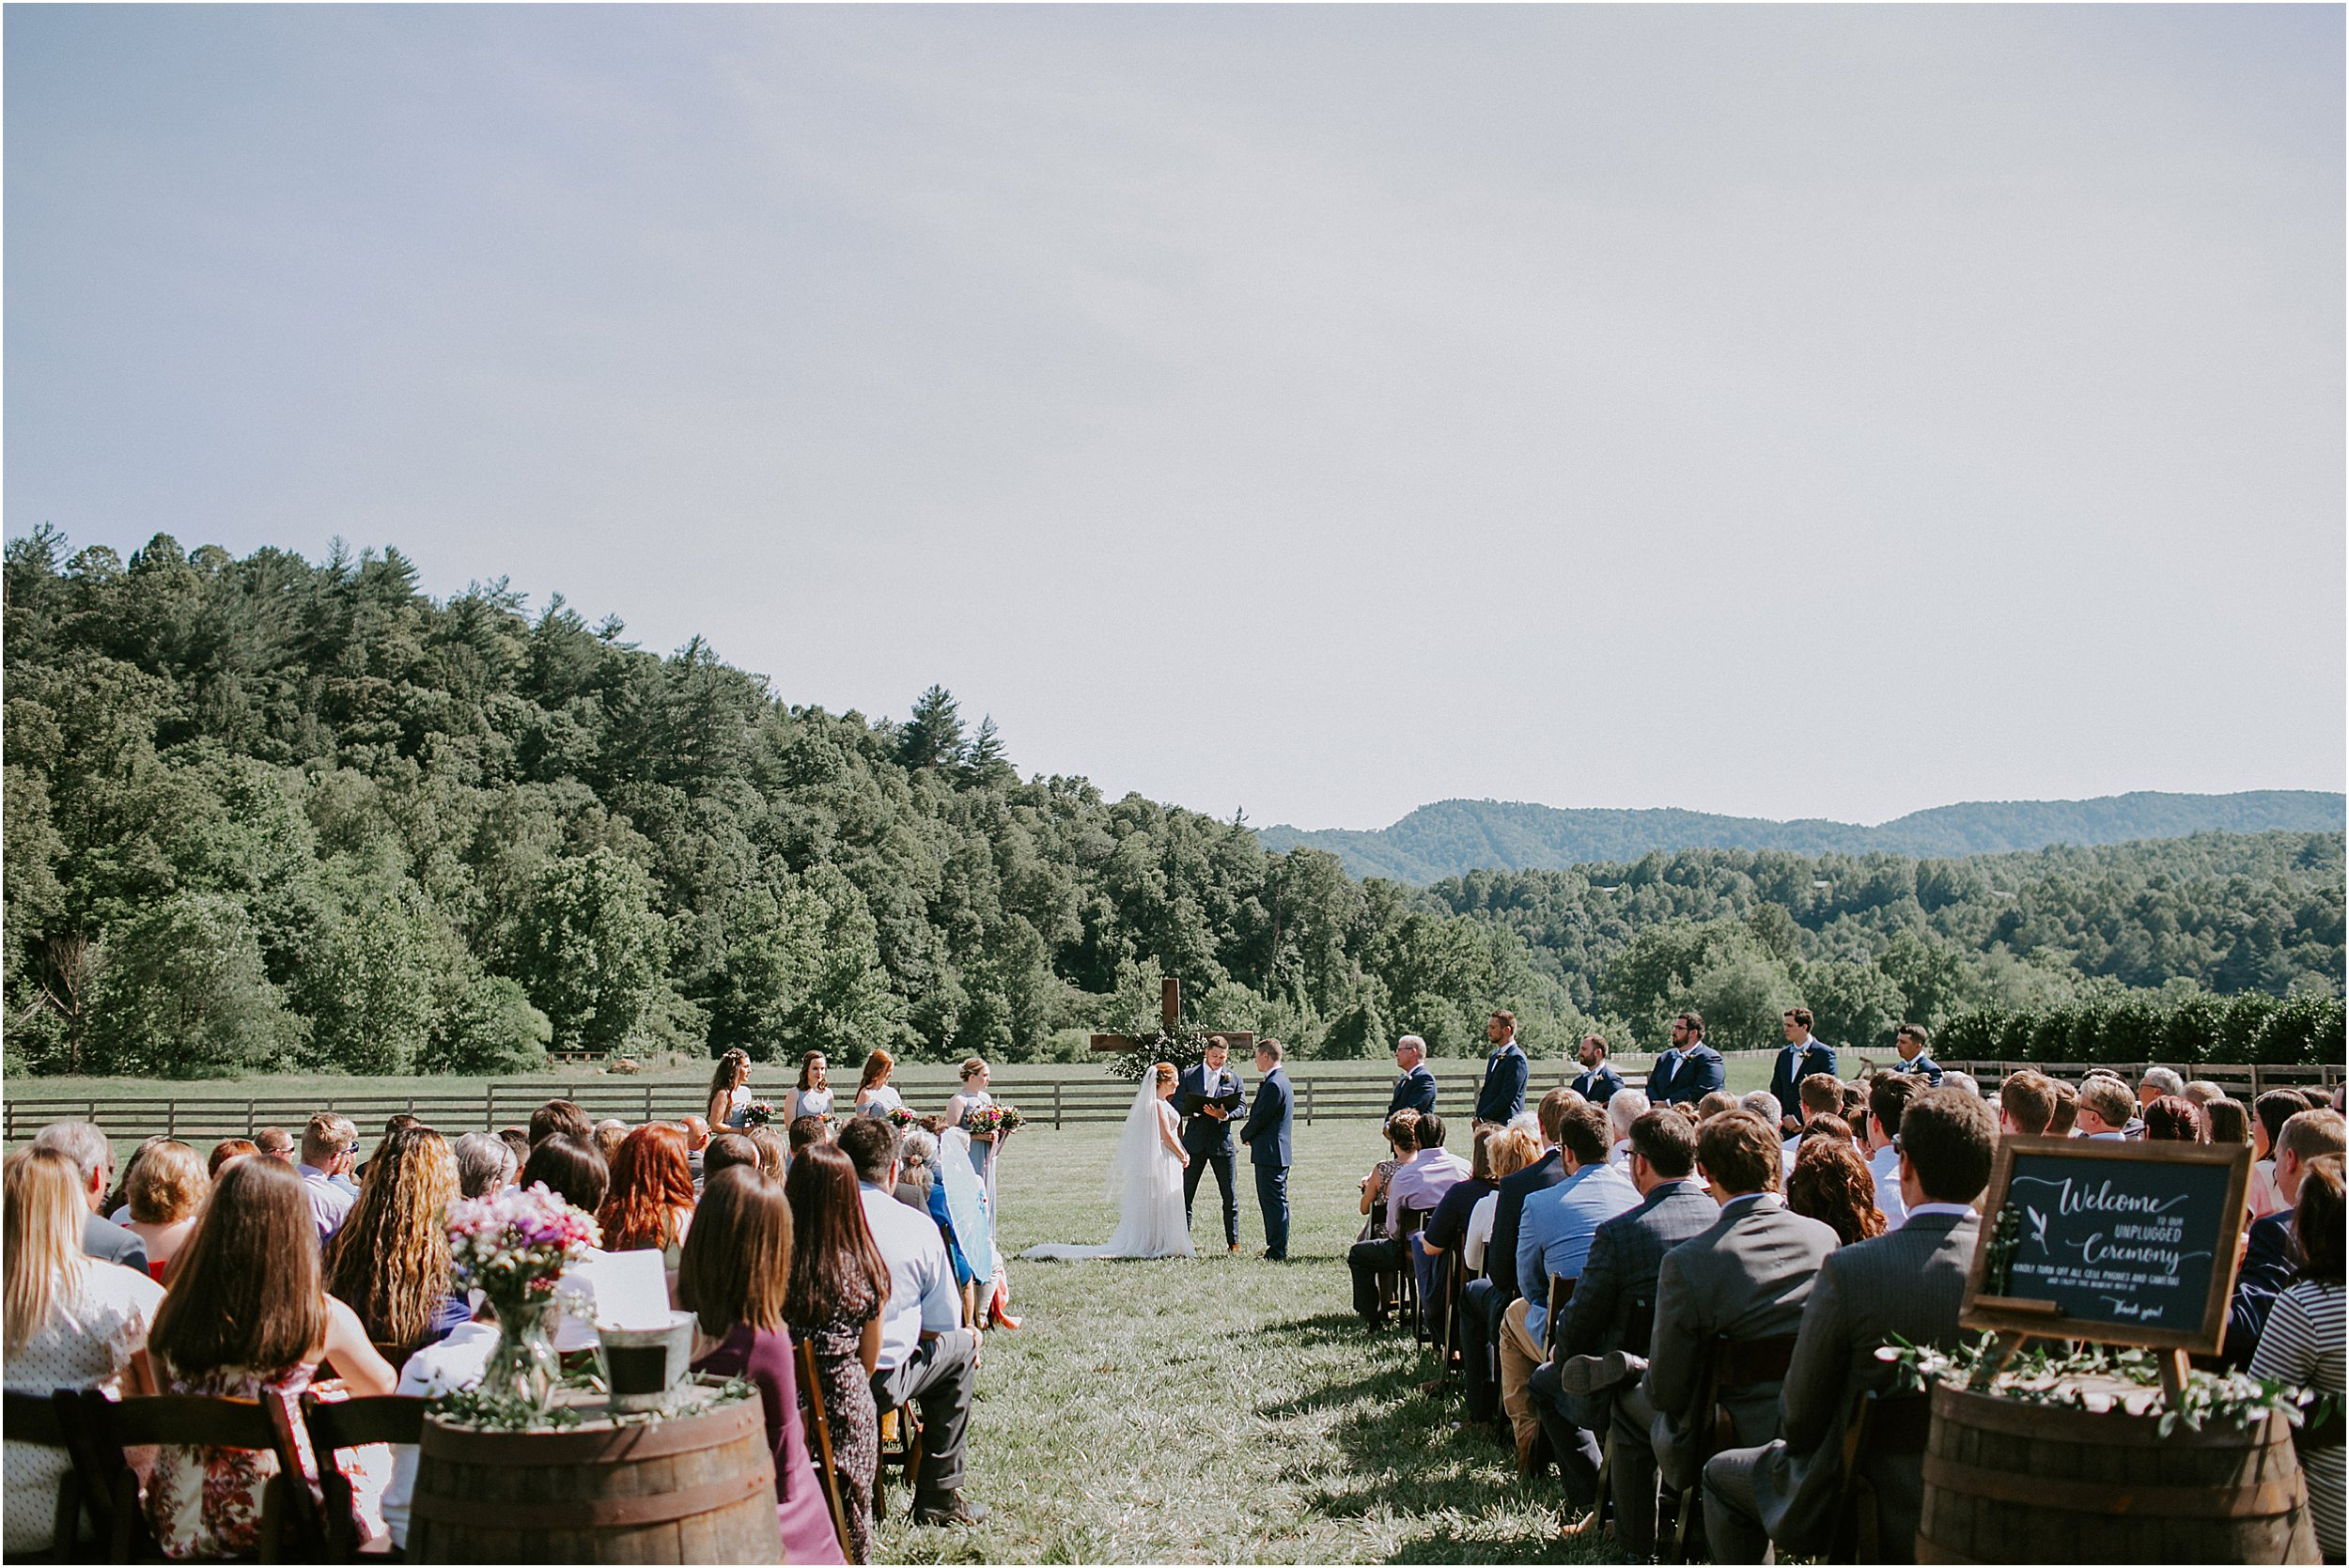 A bride and groom stand at the altar of their ceremony. It is outside on a sunny summer day with mountains in the background.